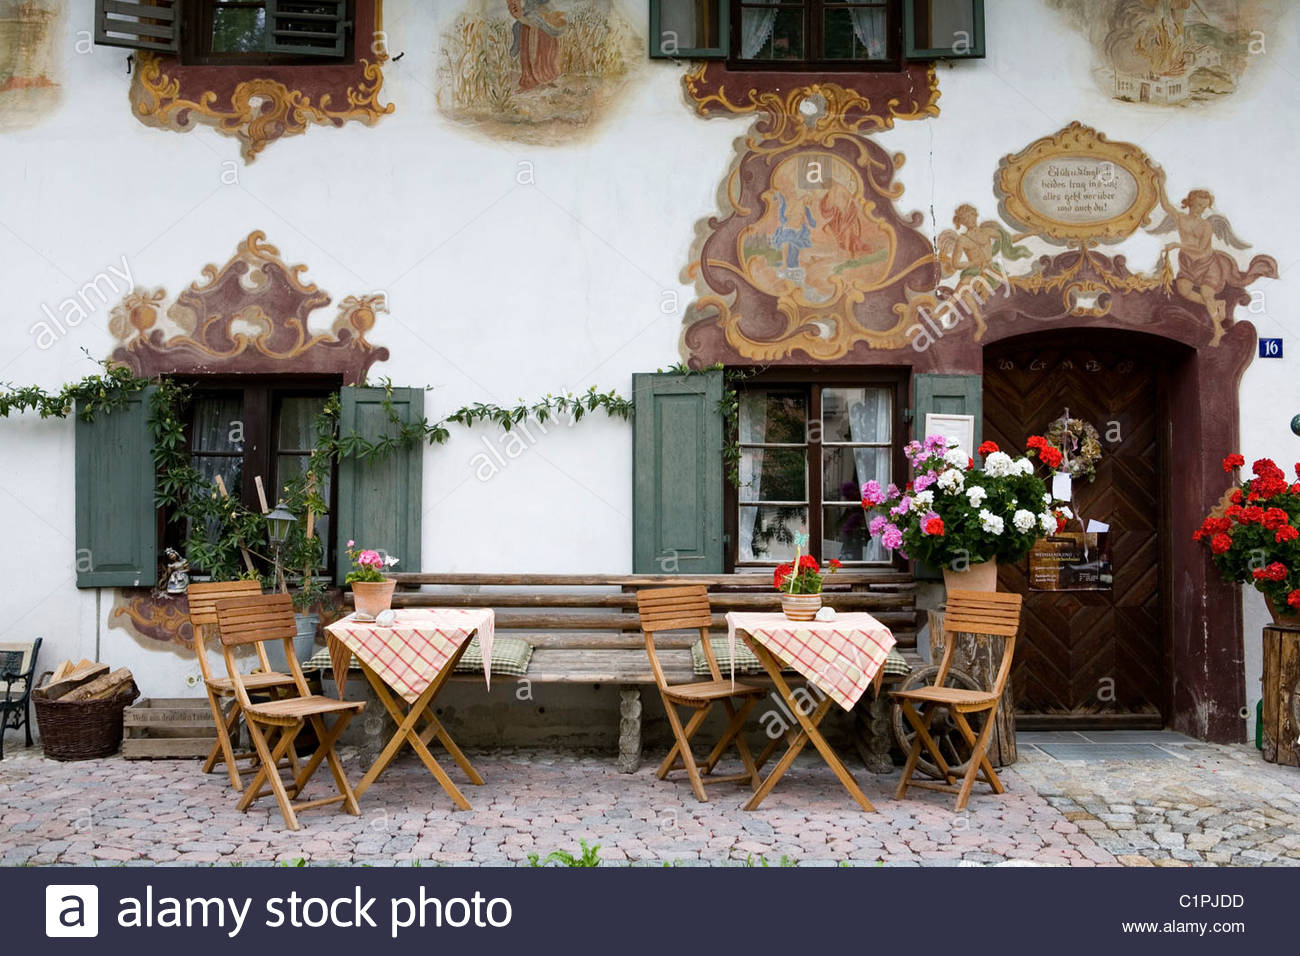 Germany, Bavaria, Oberammergau, table and chairs outside restaurant - Stock Image